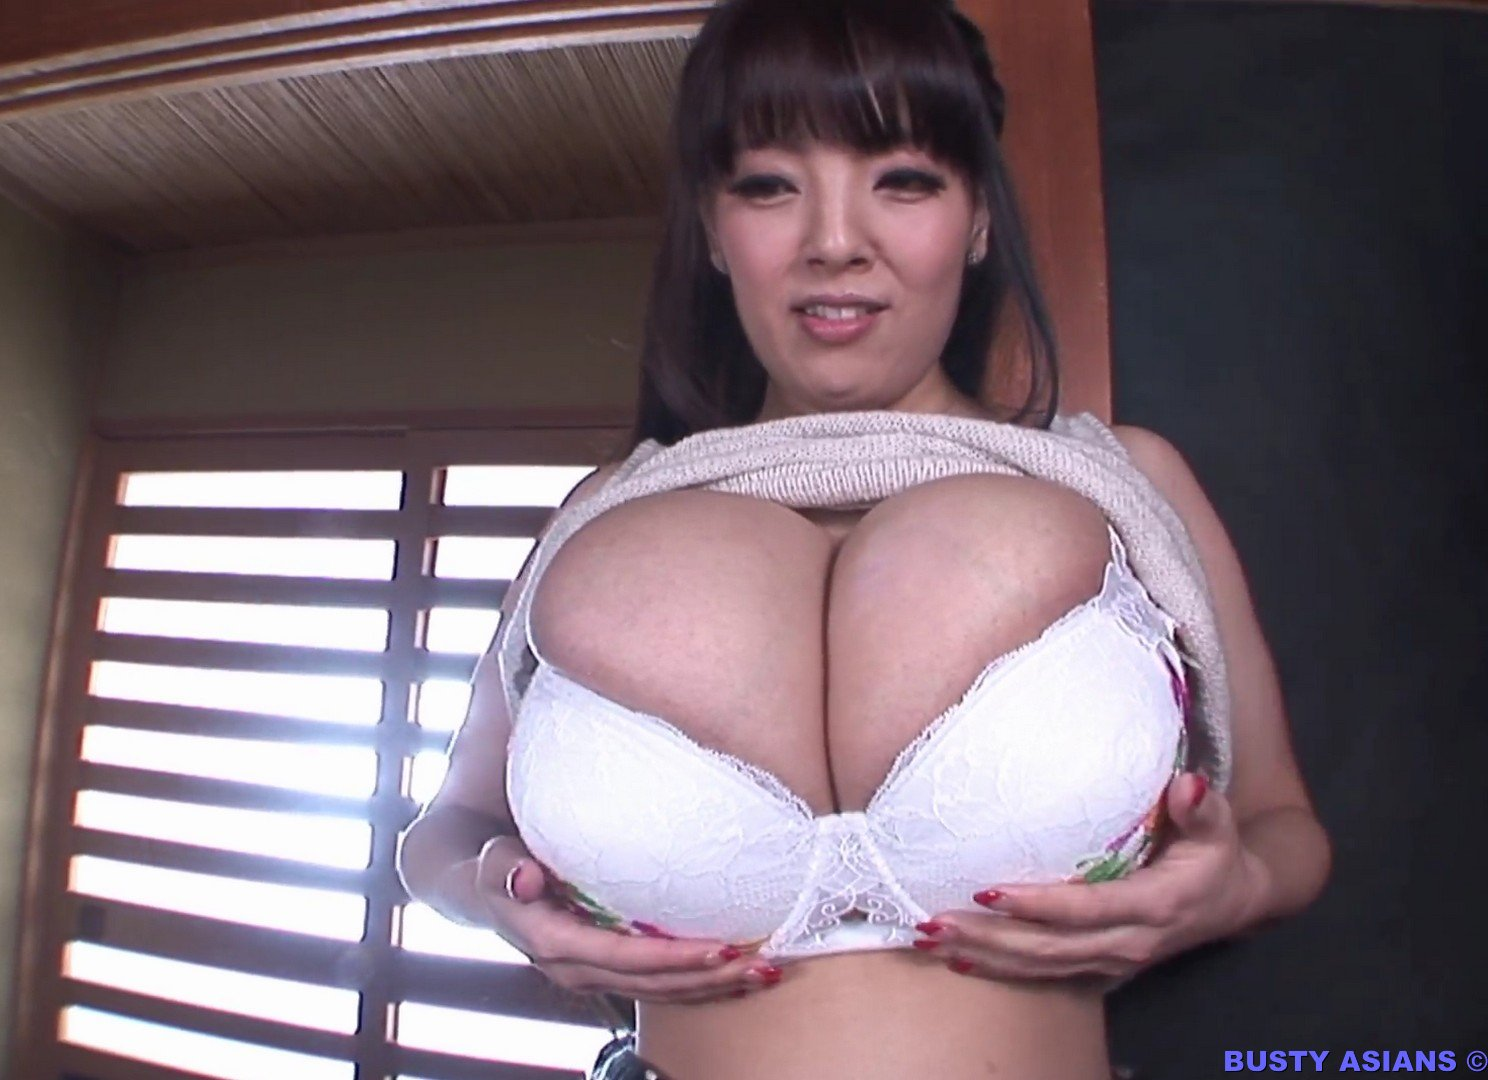 Busty asian lusoporno, nina roxanne hot